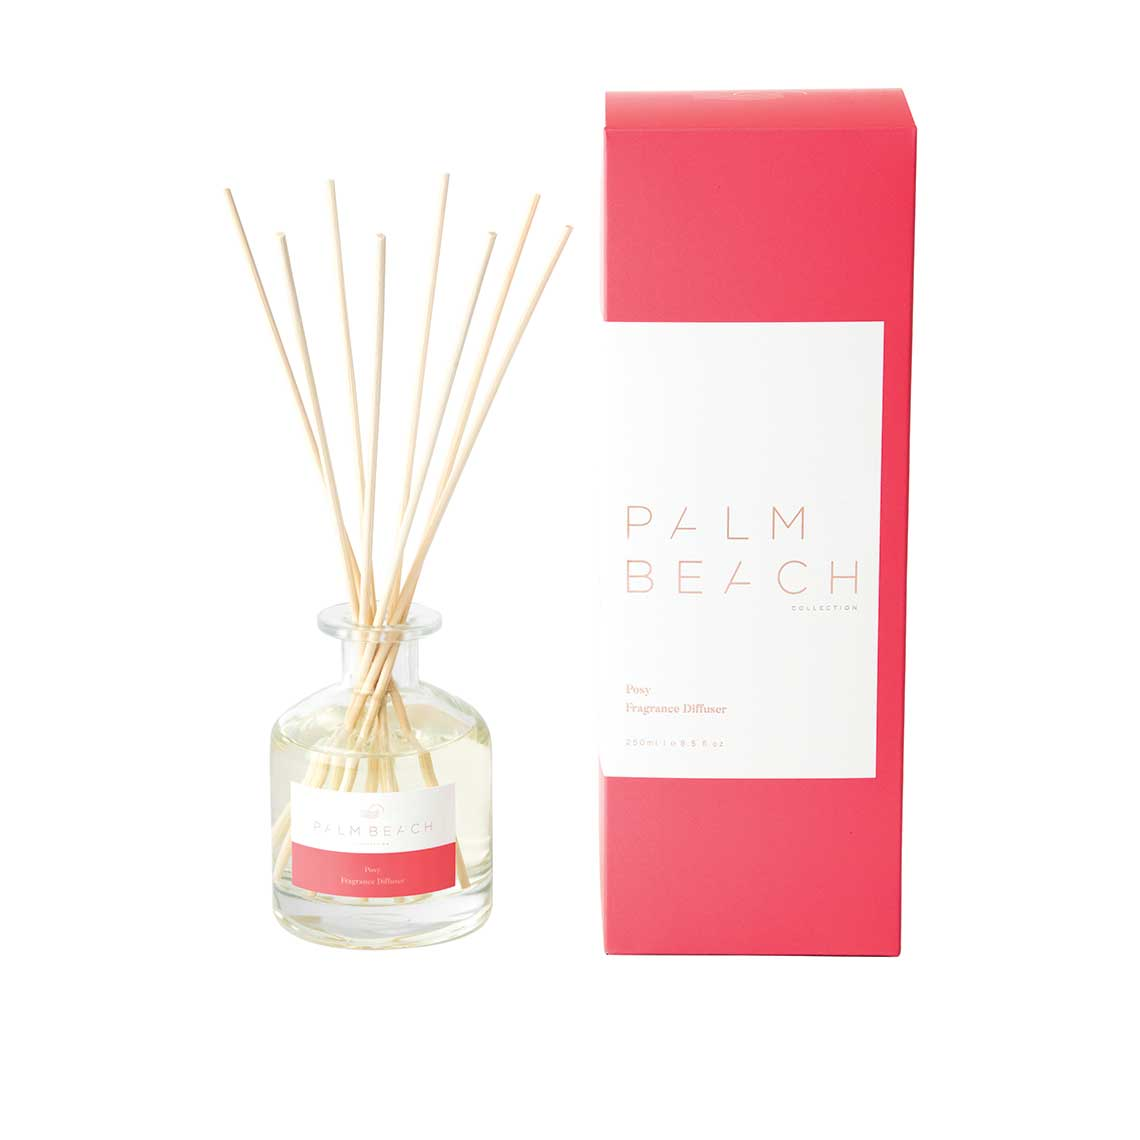 Palm Beach Collection | Posy 250ml Fragrance Diffuser | Salt & Sand Women's Clothing & Accessories Inverloch